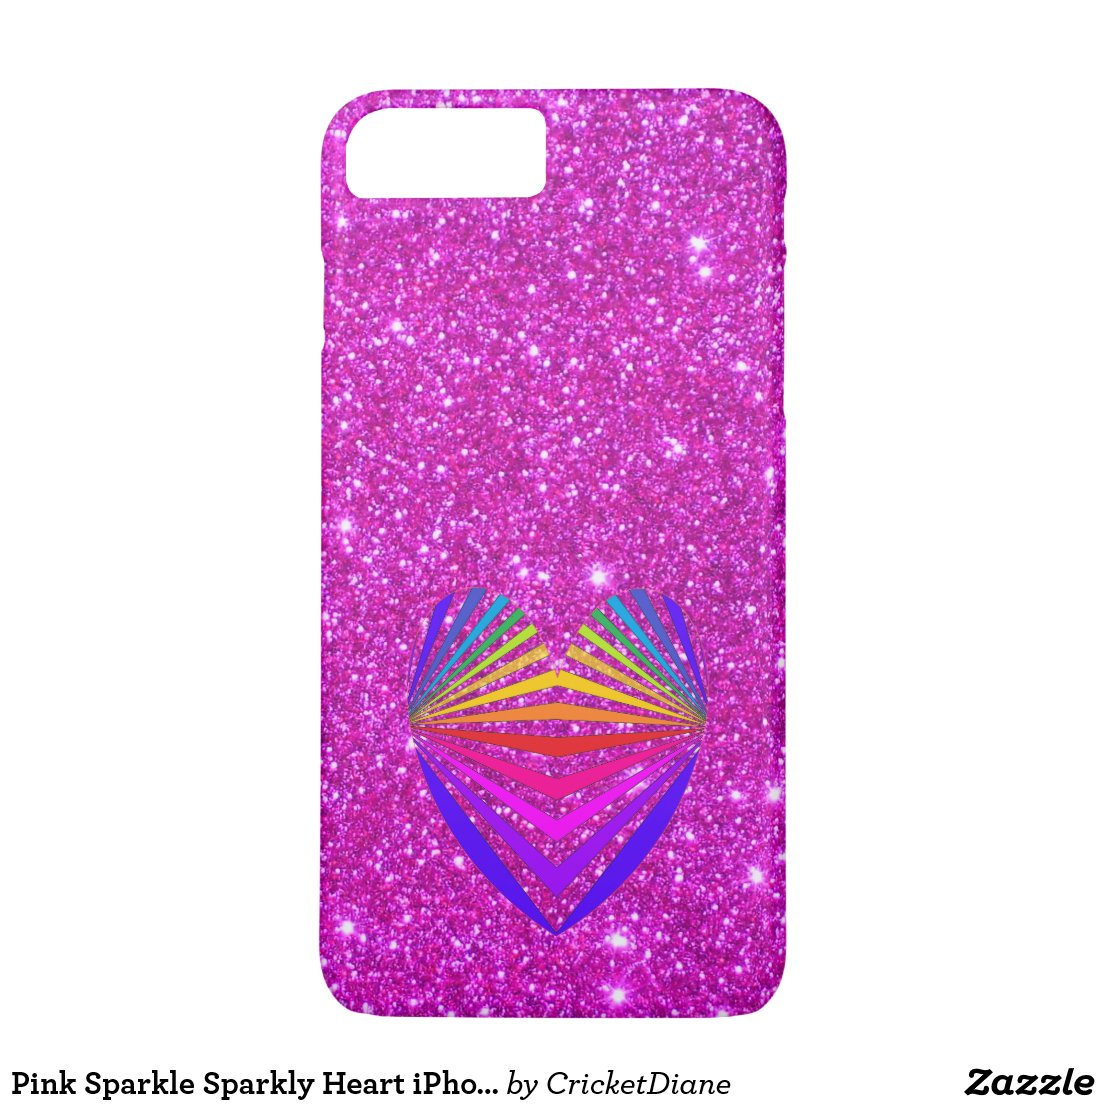 Pink Sparkle Sparkly Heart iPhone Case 2